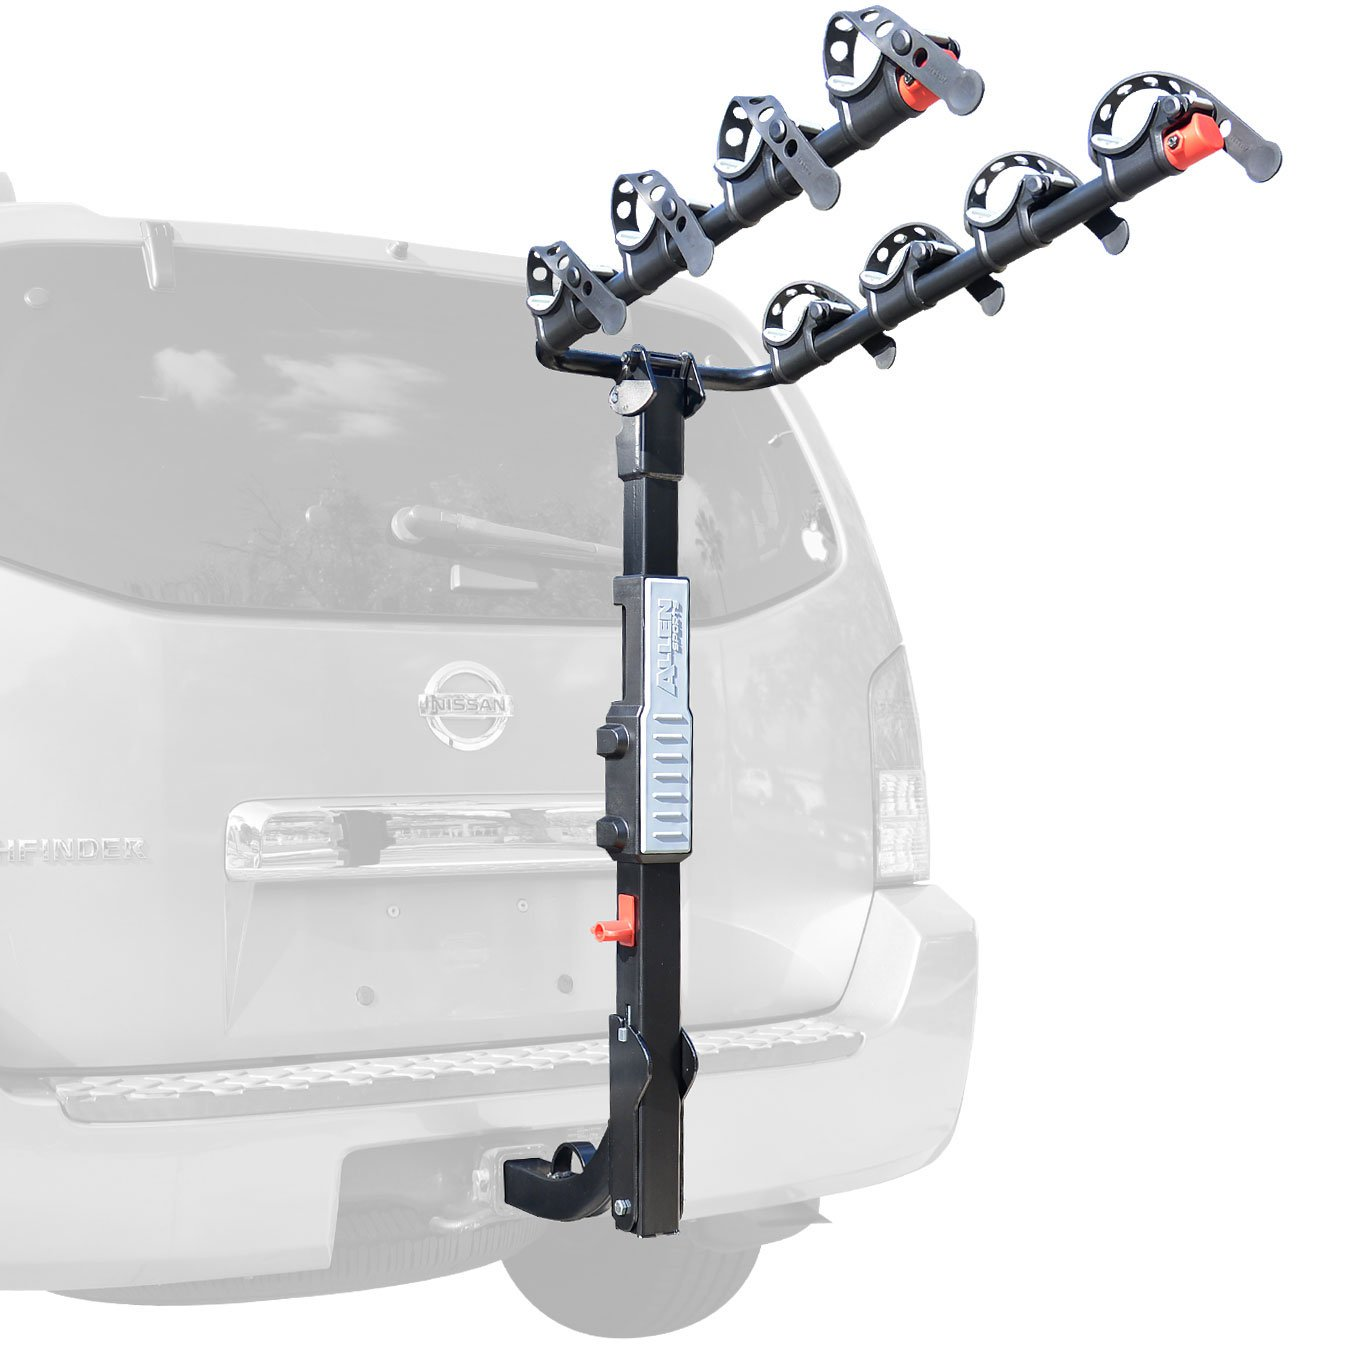 Allen Sports Premier 4-Bicycle Hitch Mounted Bike Rack Carrier, S-545 by Allen Sports